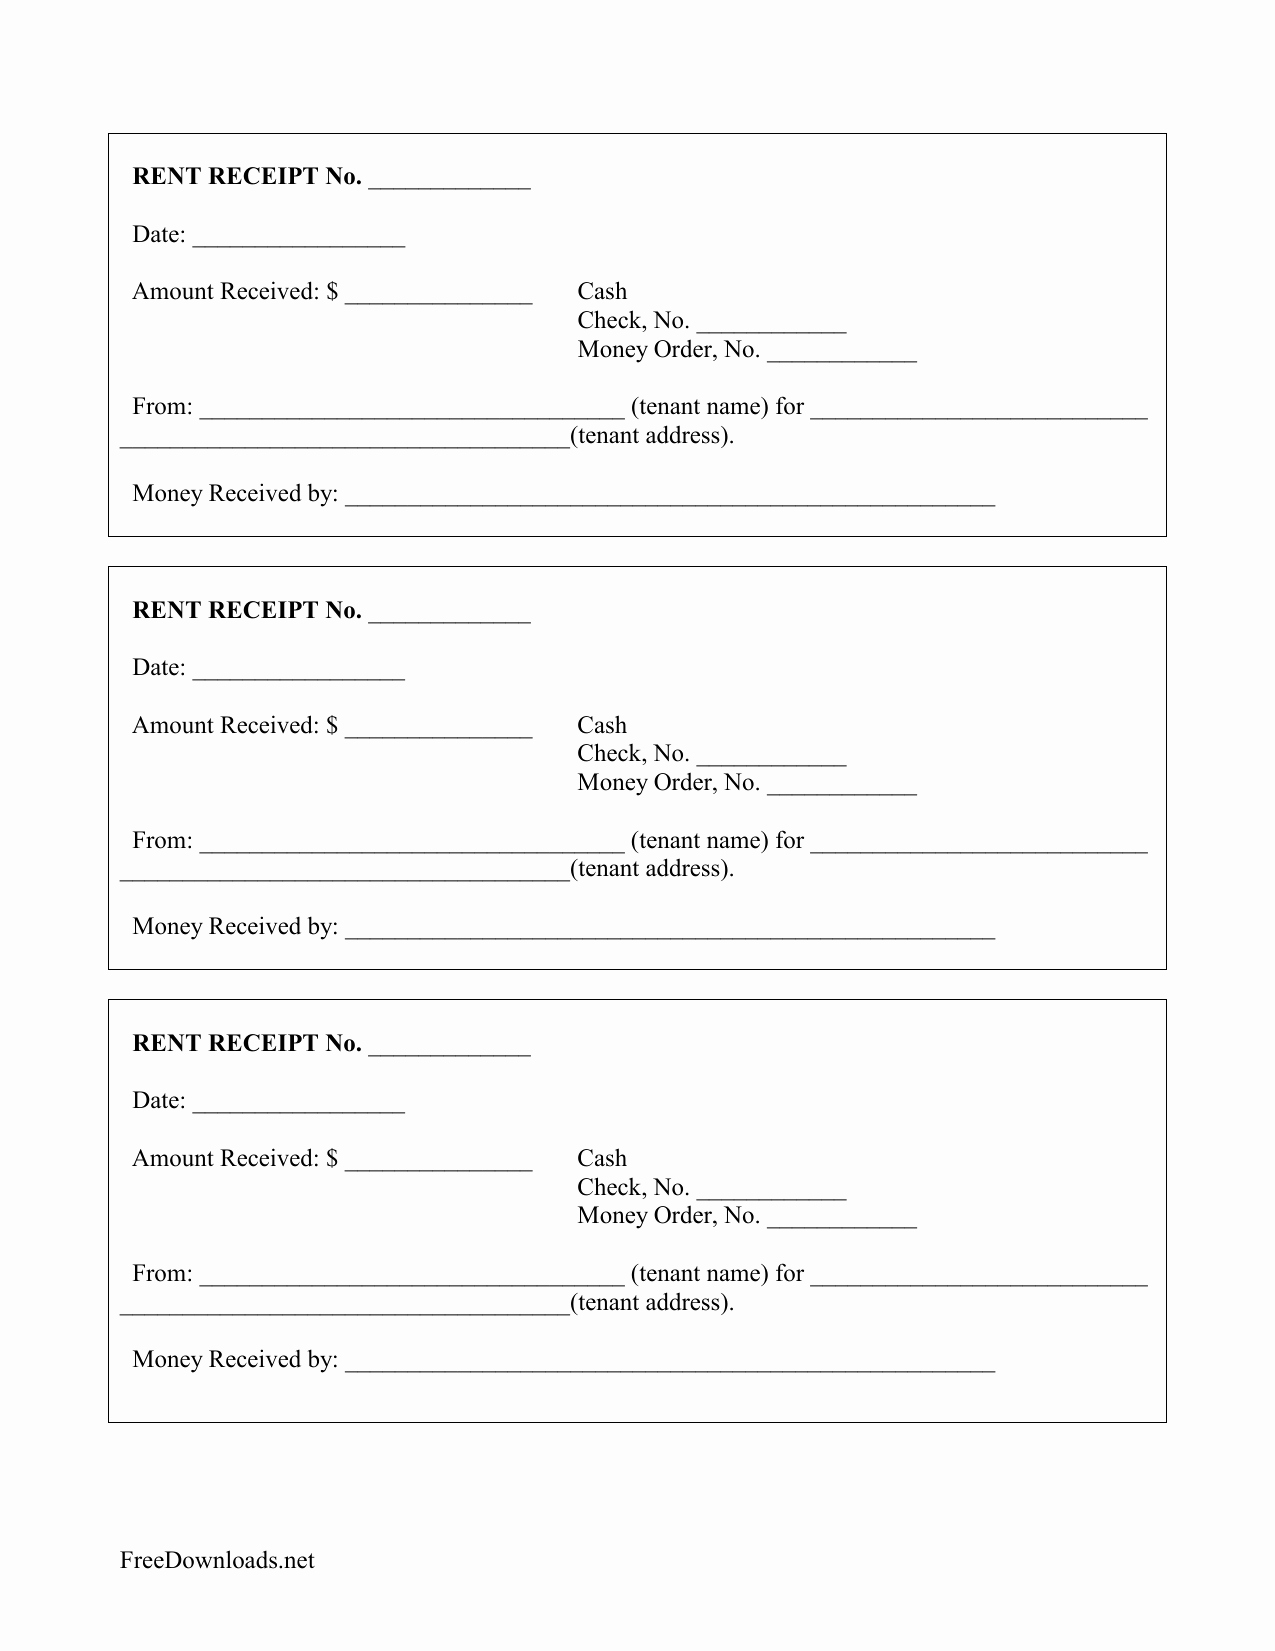 monthly rental payment receipt template